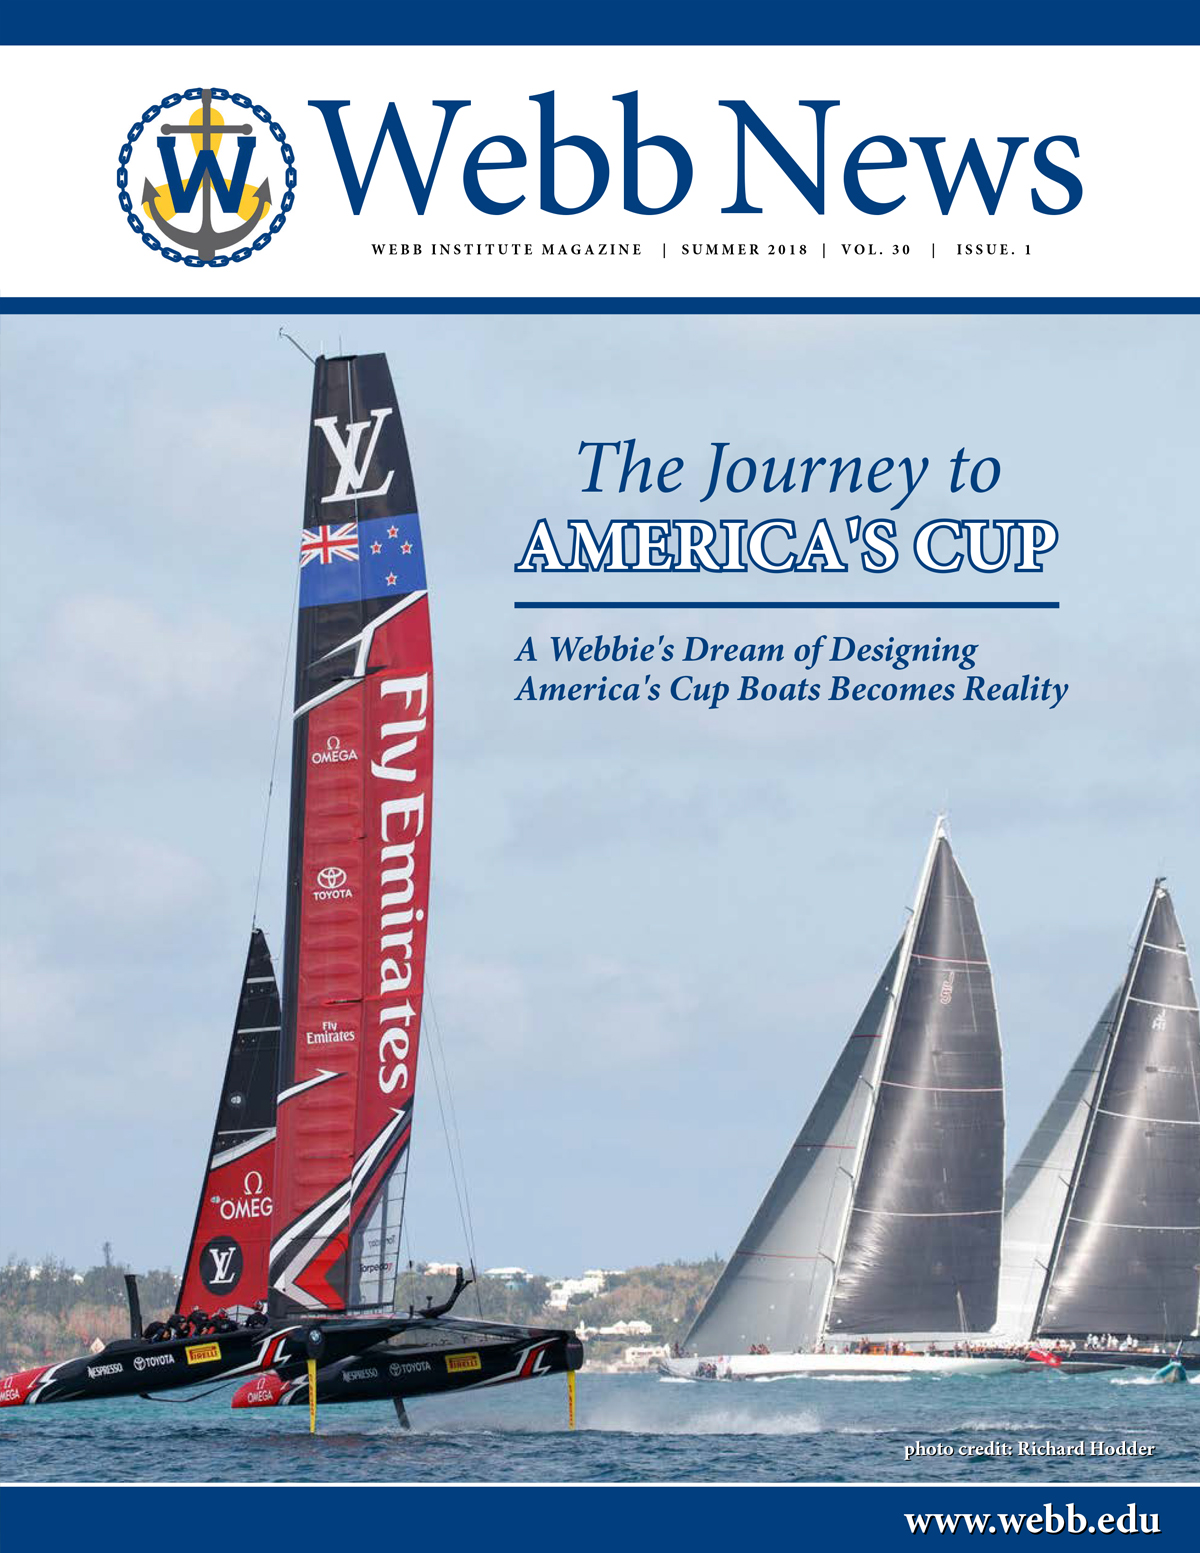 Webb News Summer 2018